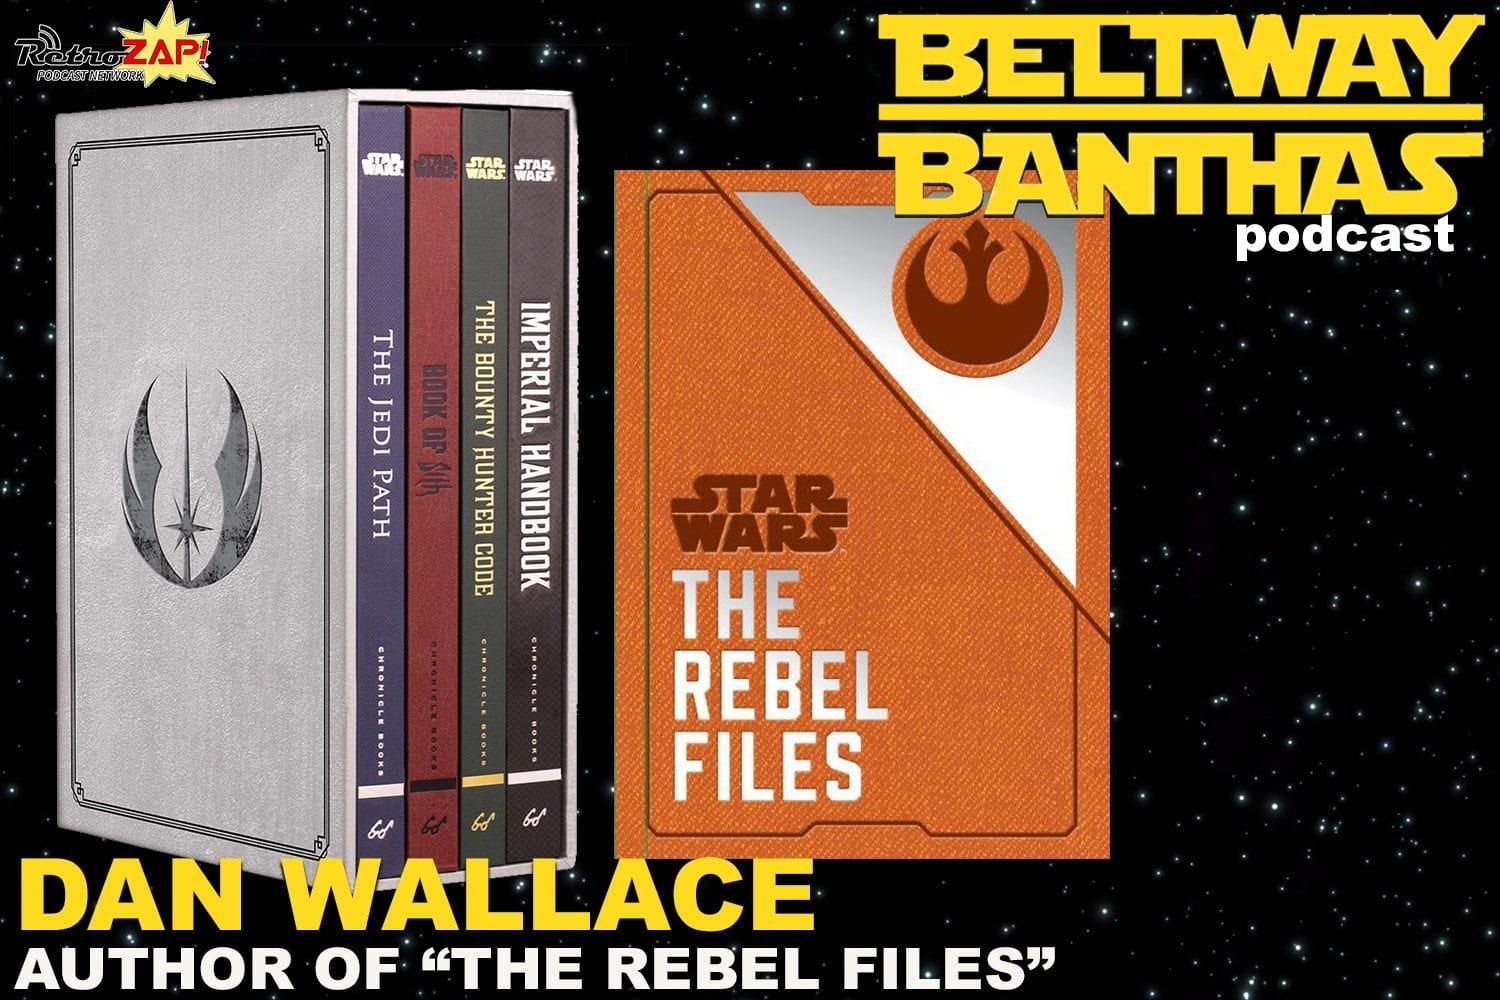 Beltway Banthas Interview: Dan Wallace of The Rebel Files